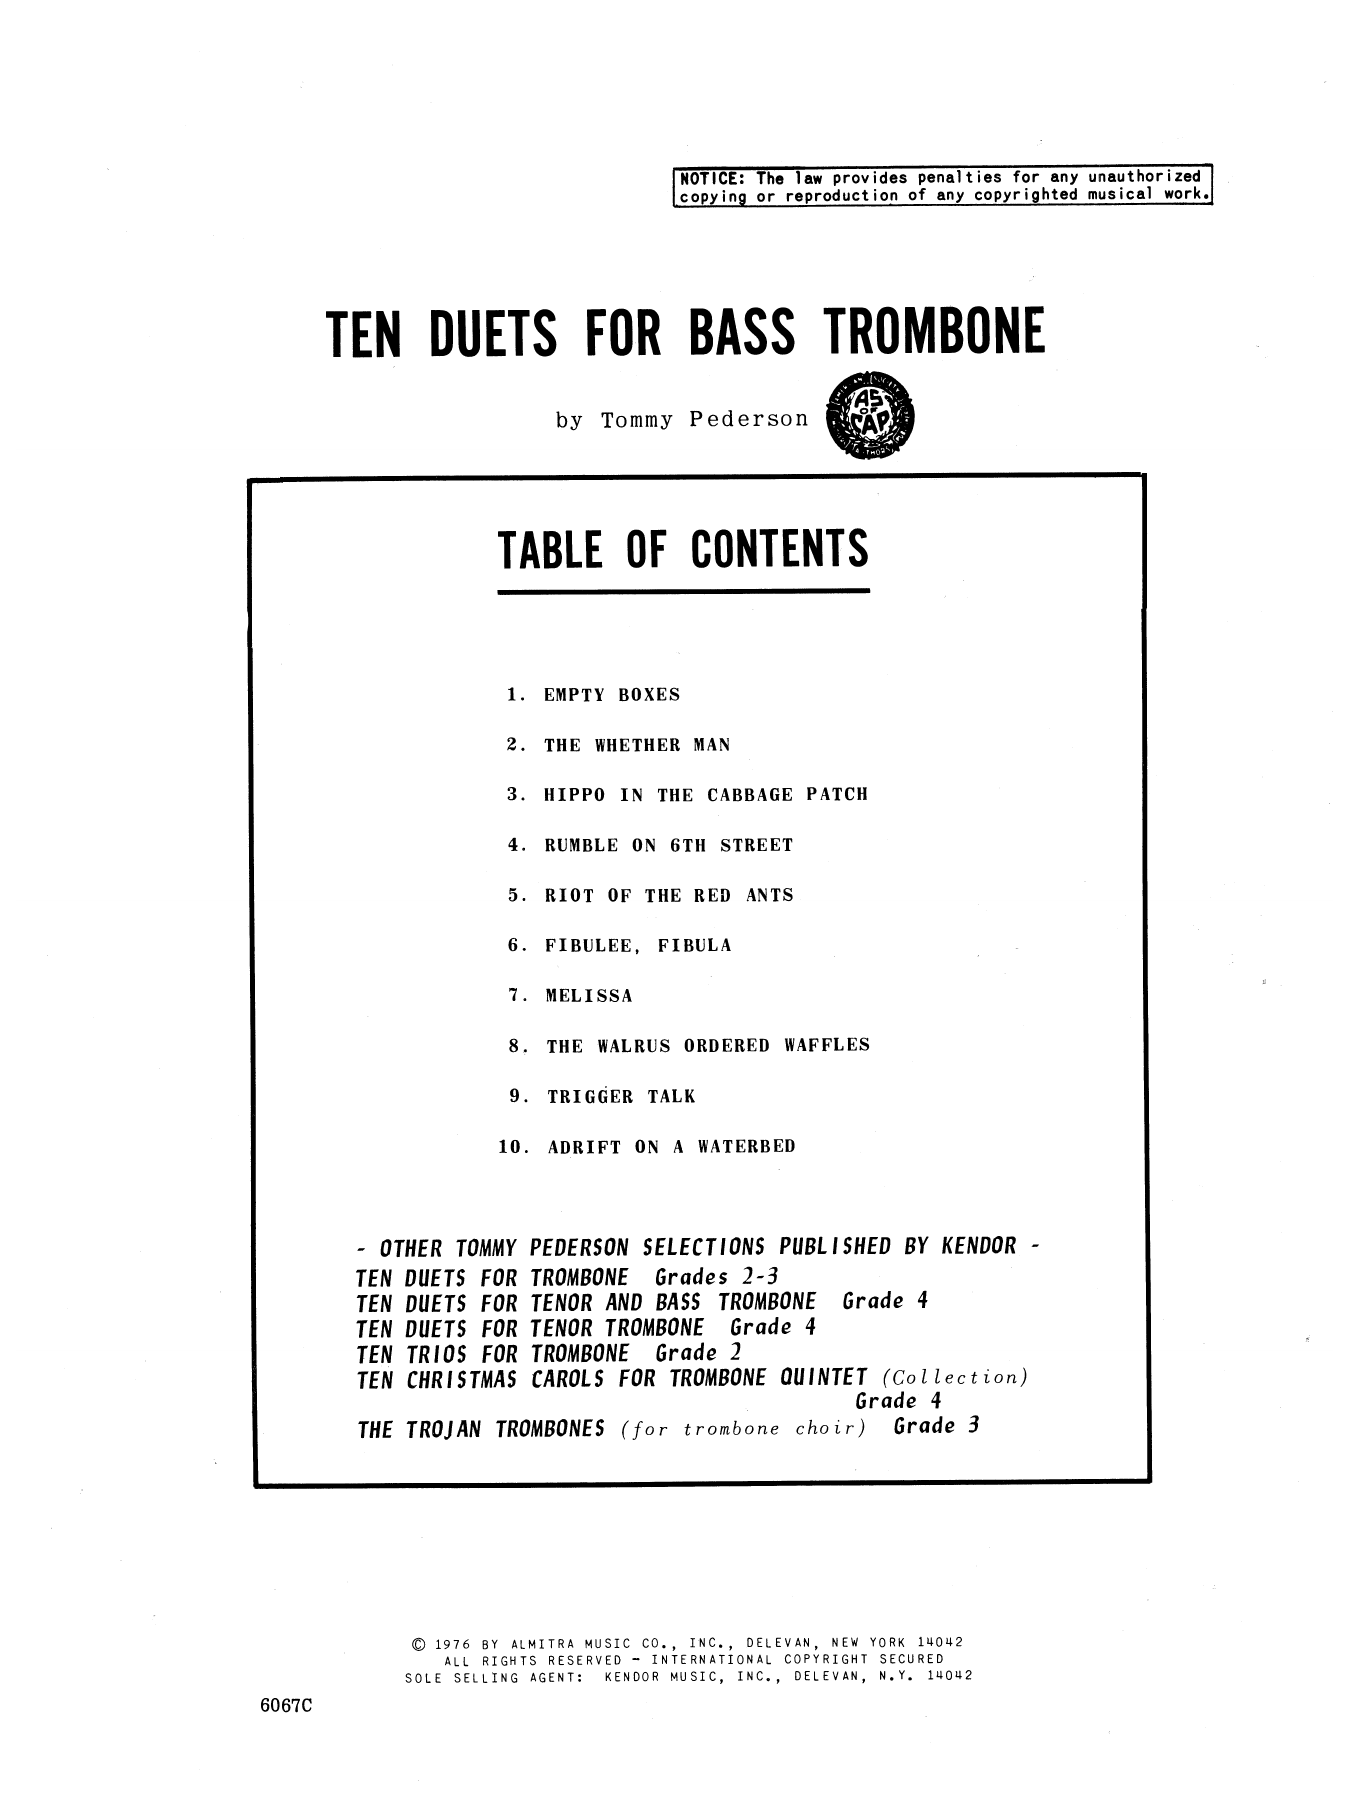 Ten Duets For Bass Trombone Sheet Music